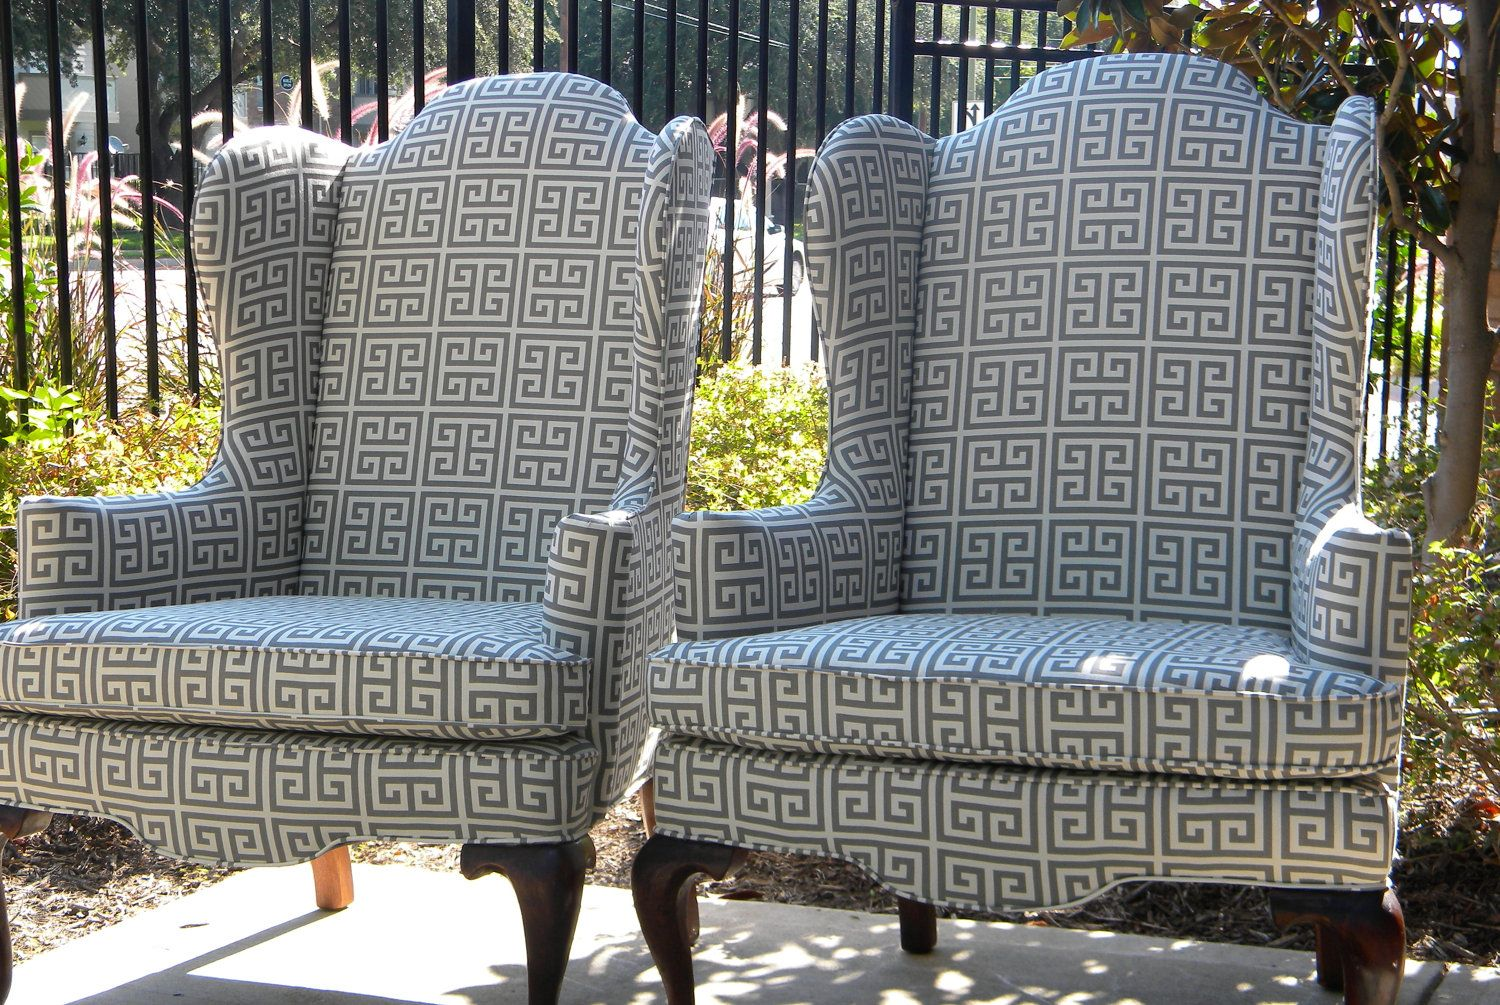 Exceptional Refurbished Wingback Chairs With A Modern, Geometric Fabric   Stunning.  $1,600.00,